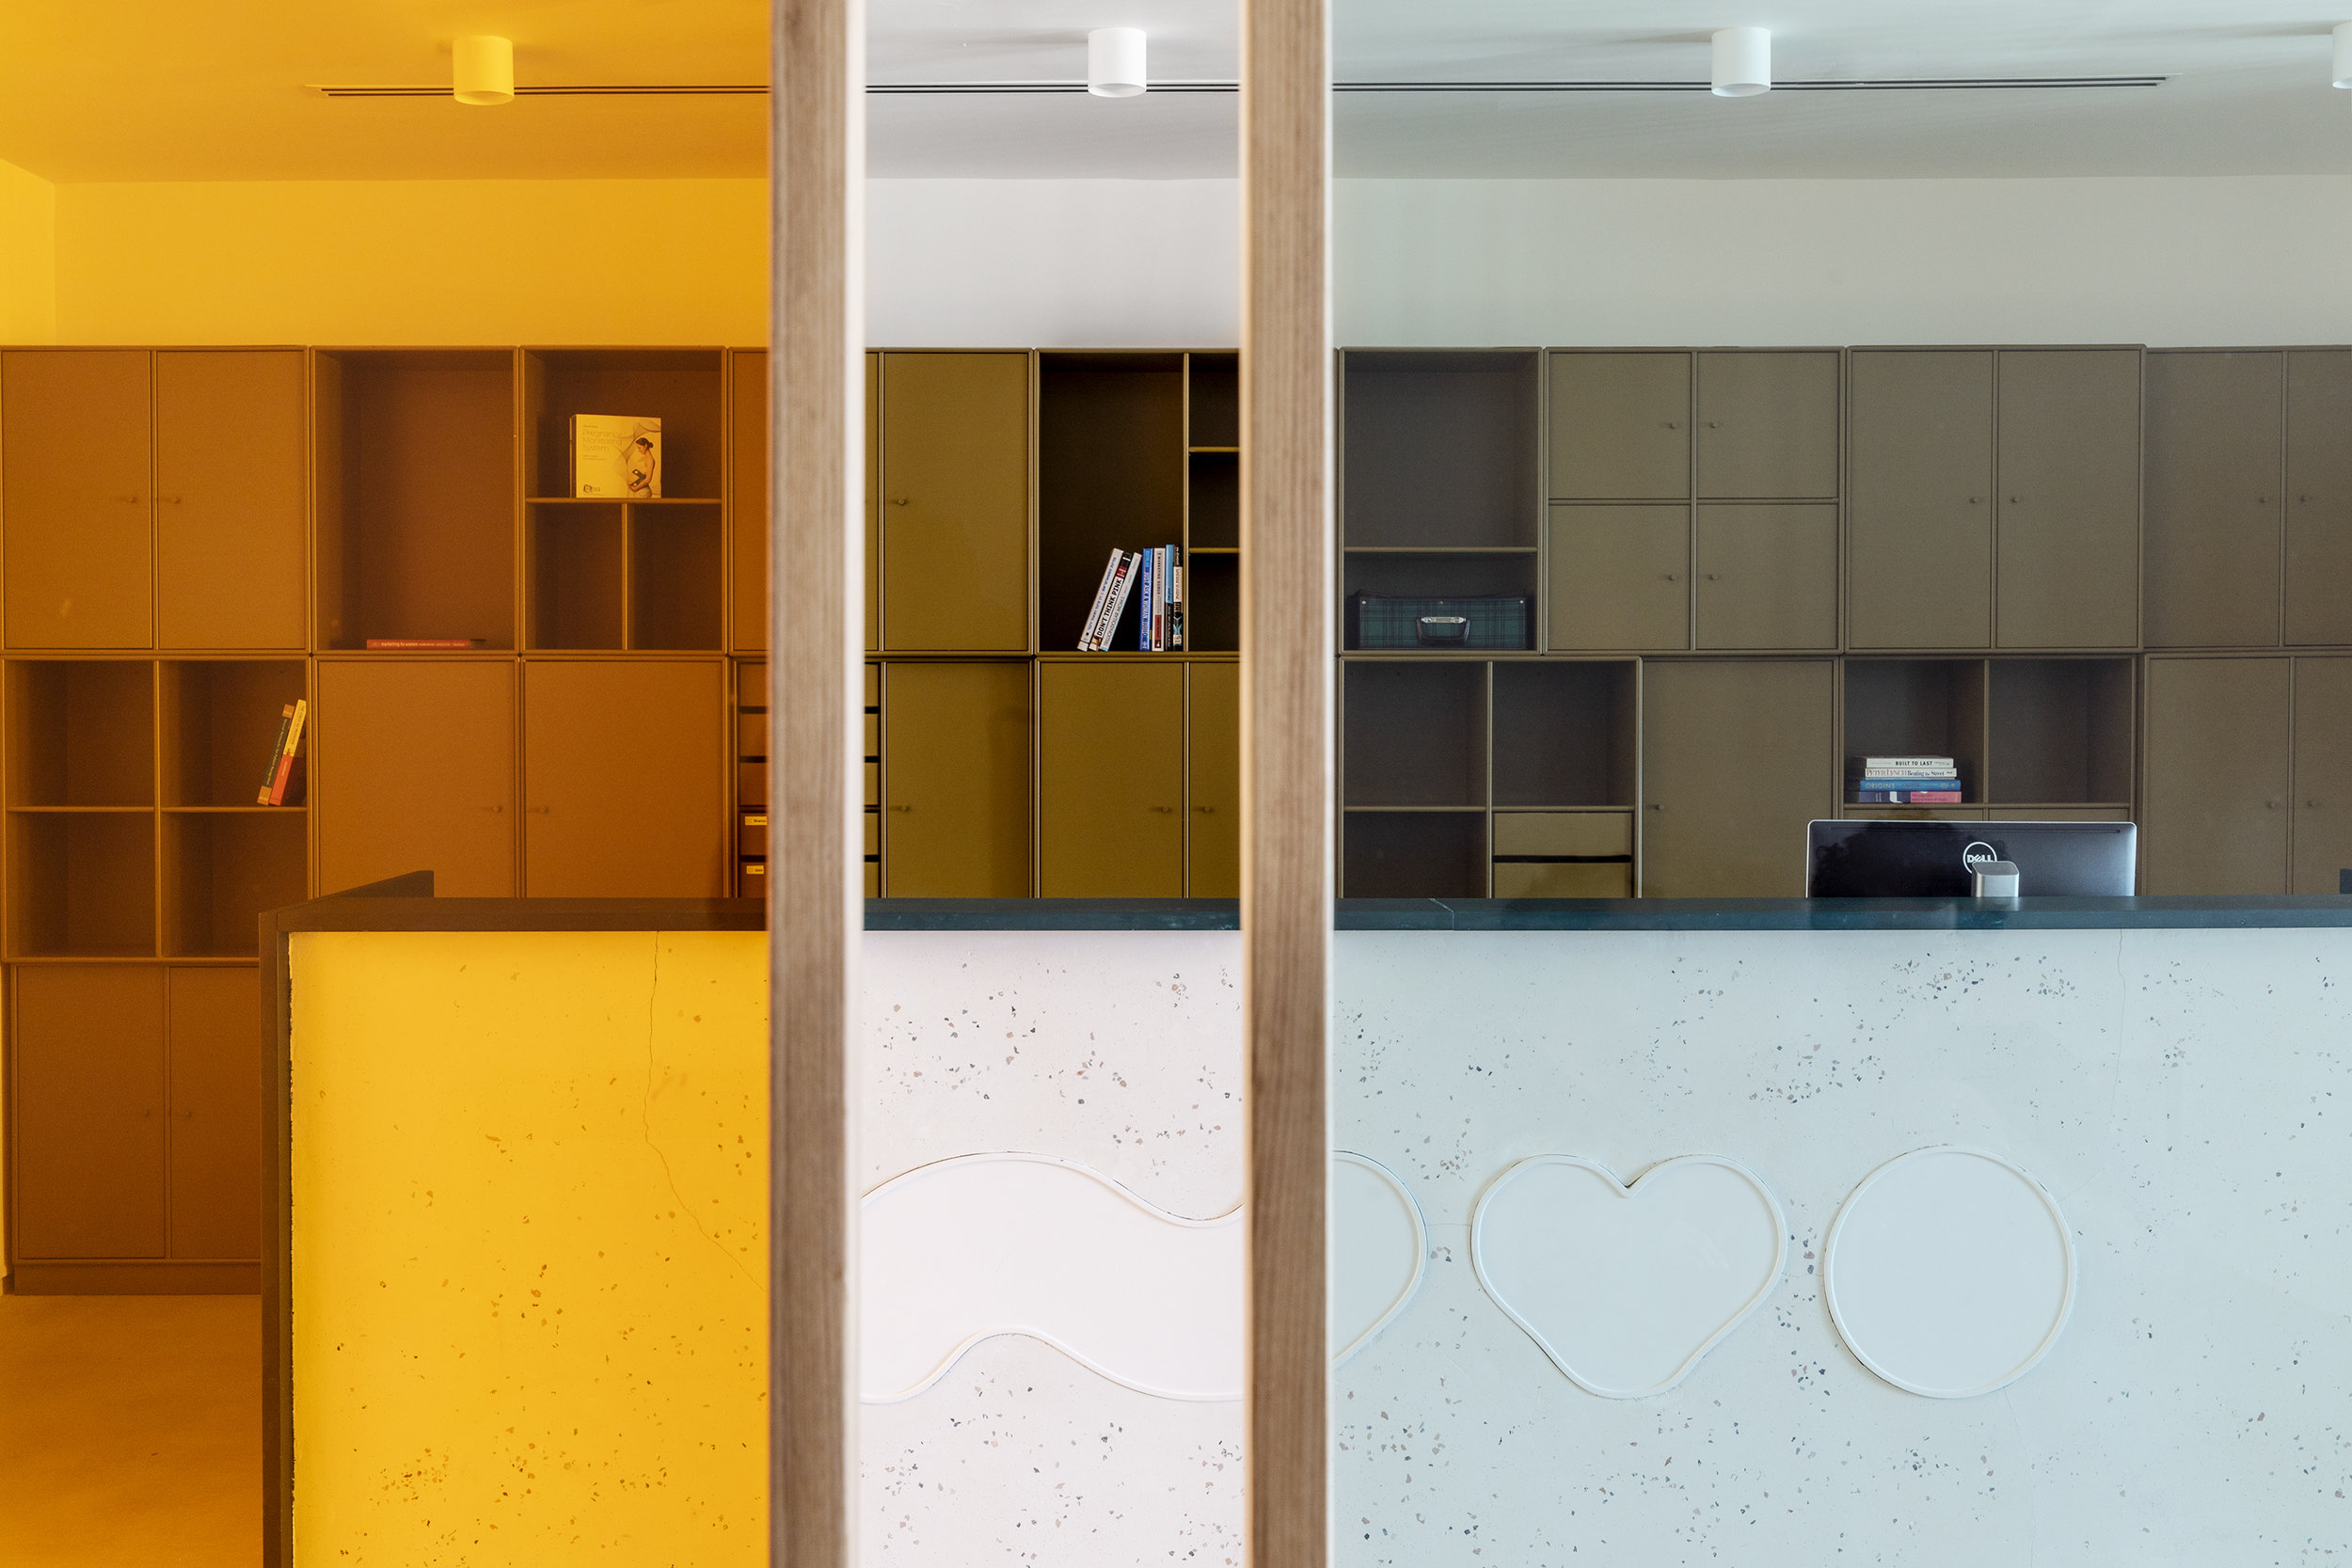 006_סטודיו רואי דוד - ROY DAVID ARCHITECTURE - NUVO OFFICES.jpg